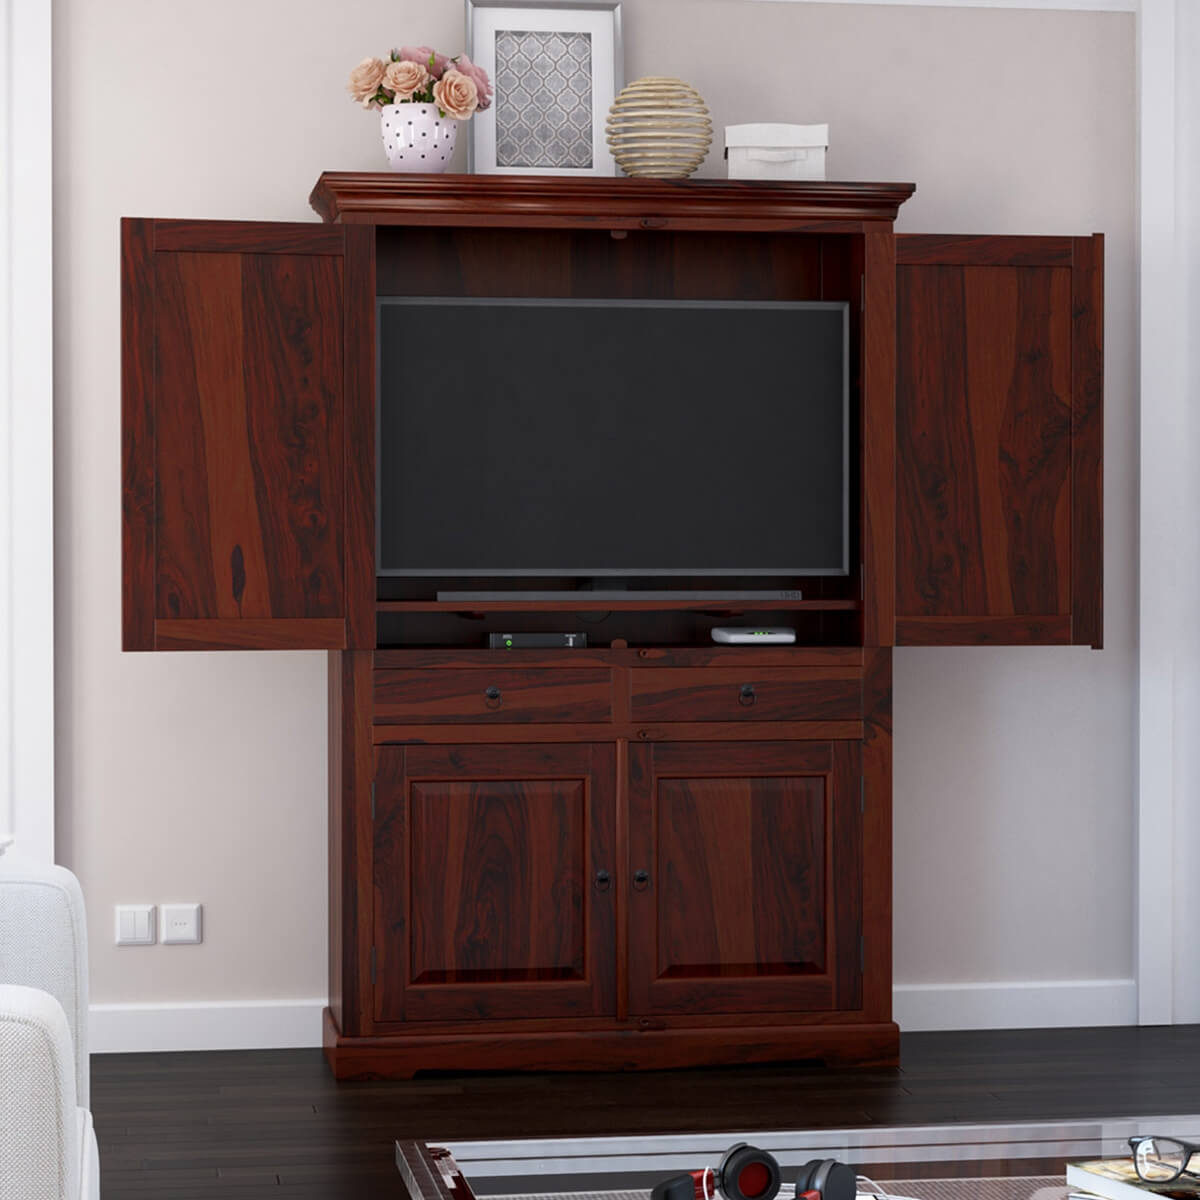 Rossford 4 Door Solid Wood Rustic Large TV Armoire Cabinet ...